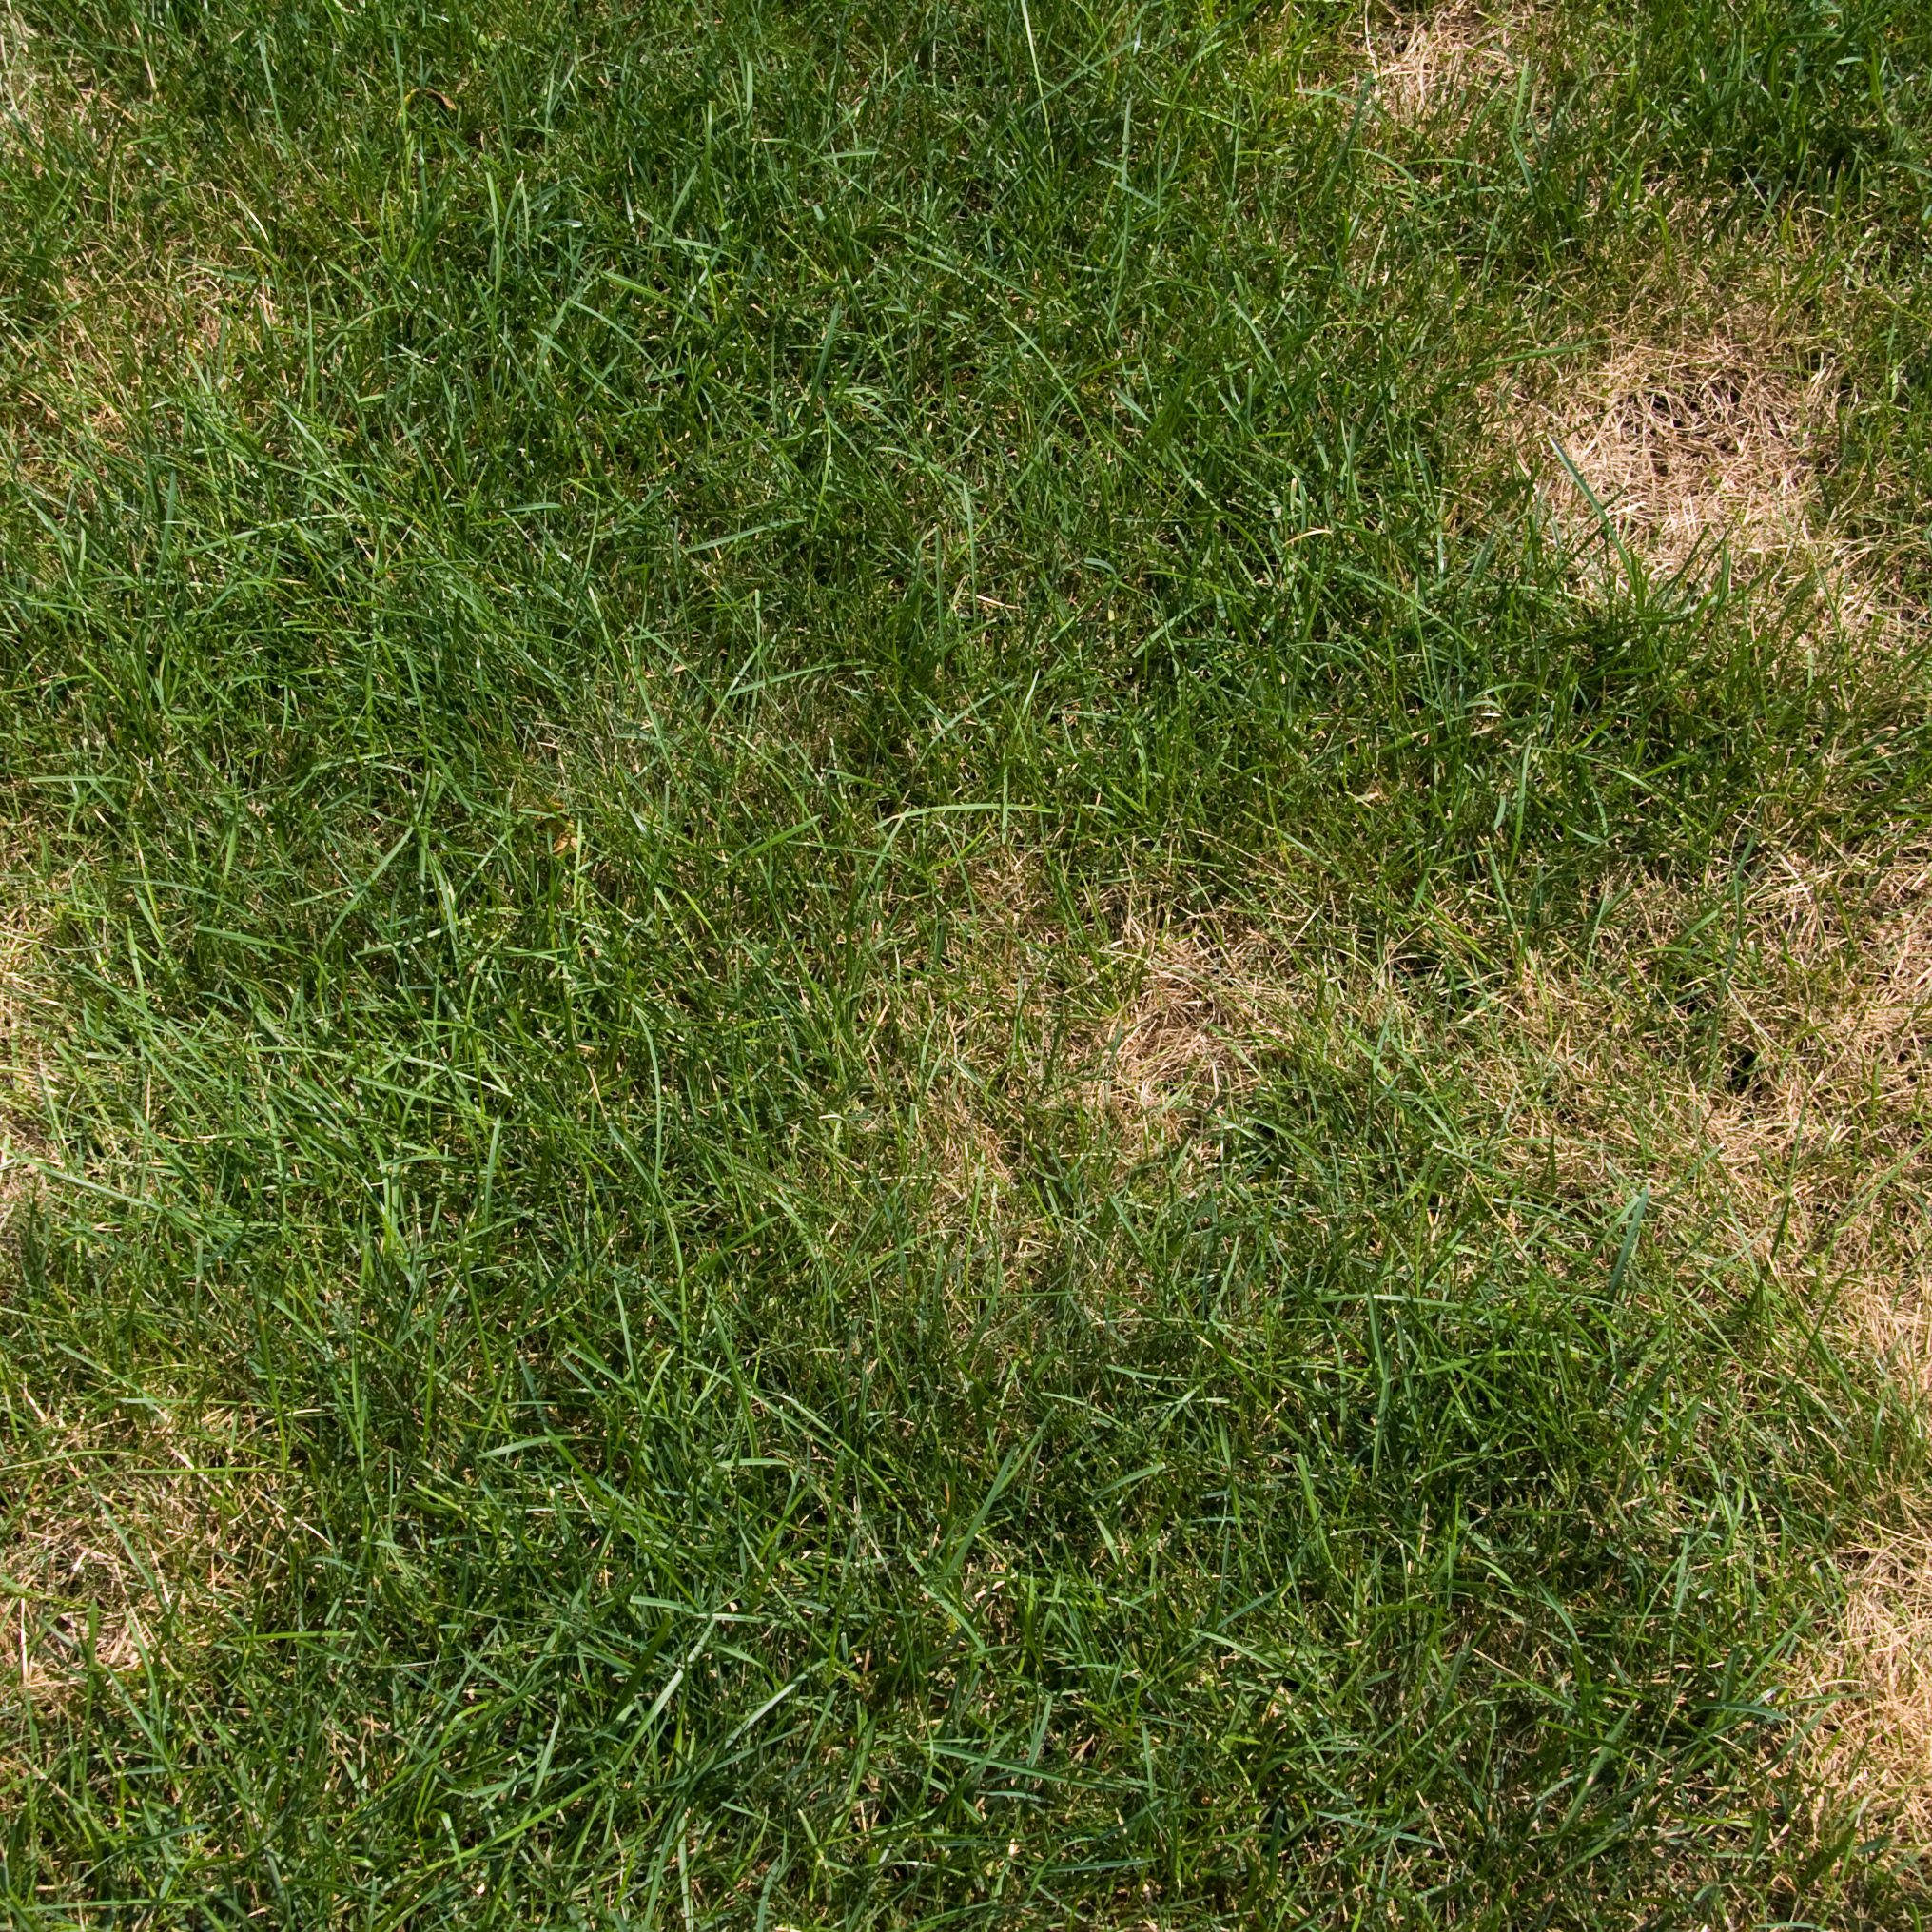 How To Get Rid Of Brown Patch Fungus On Gr